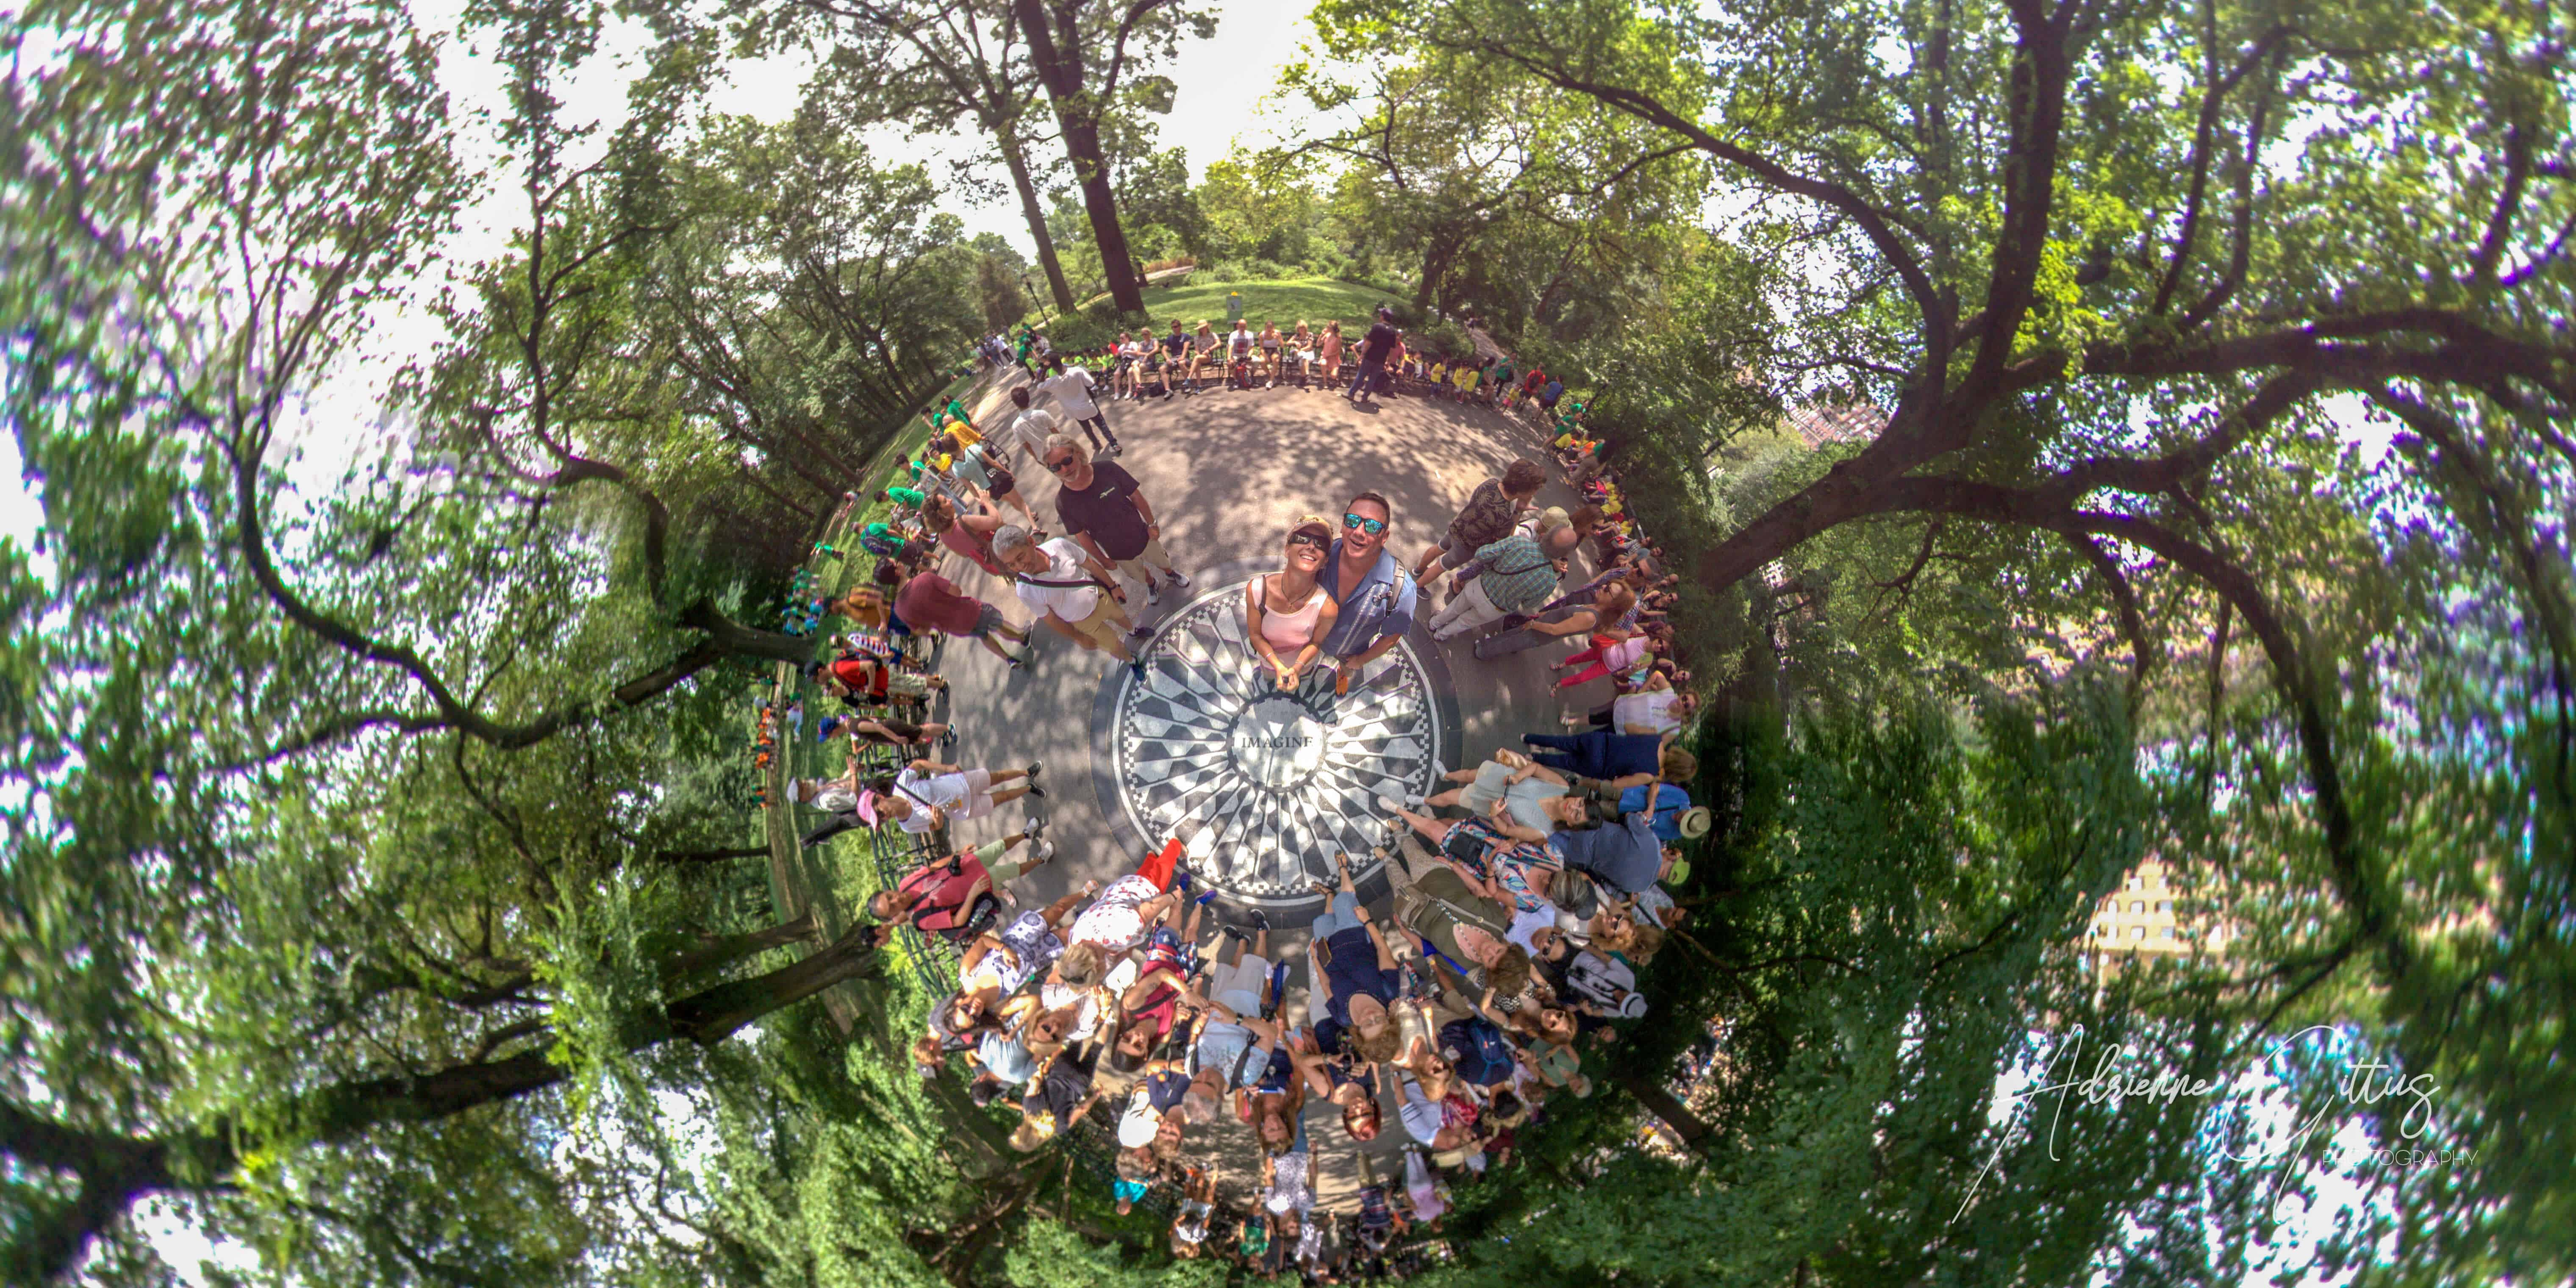 360 tiny planet, John lennon memorial, imagine, central park, new york